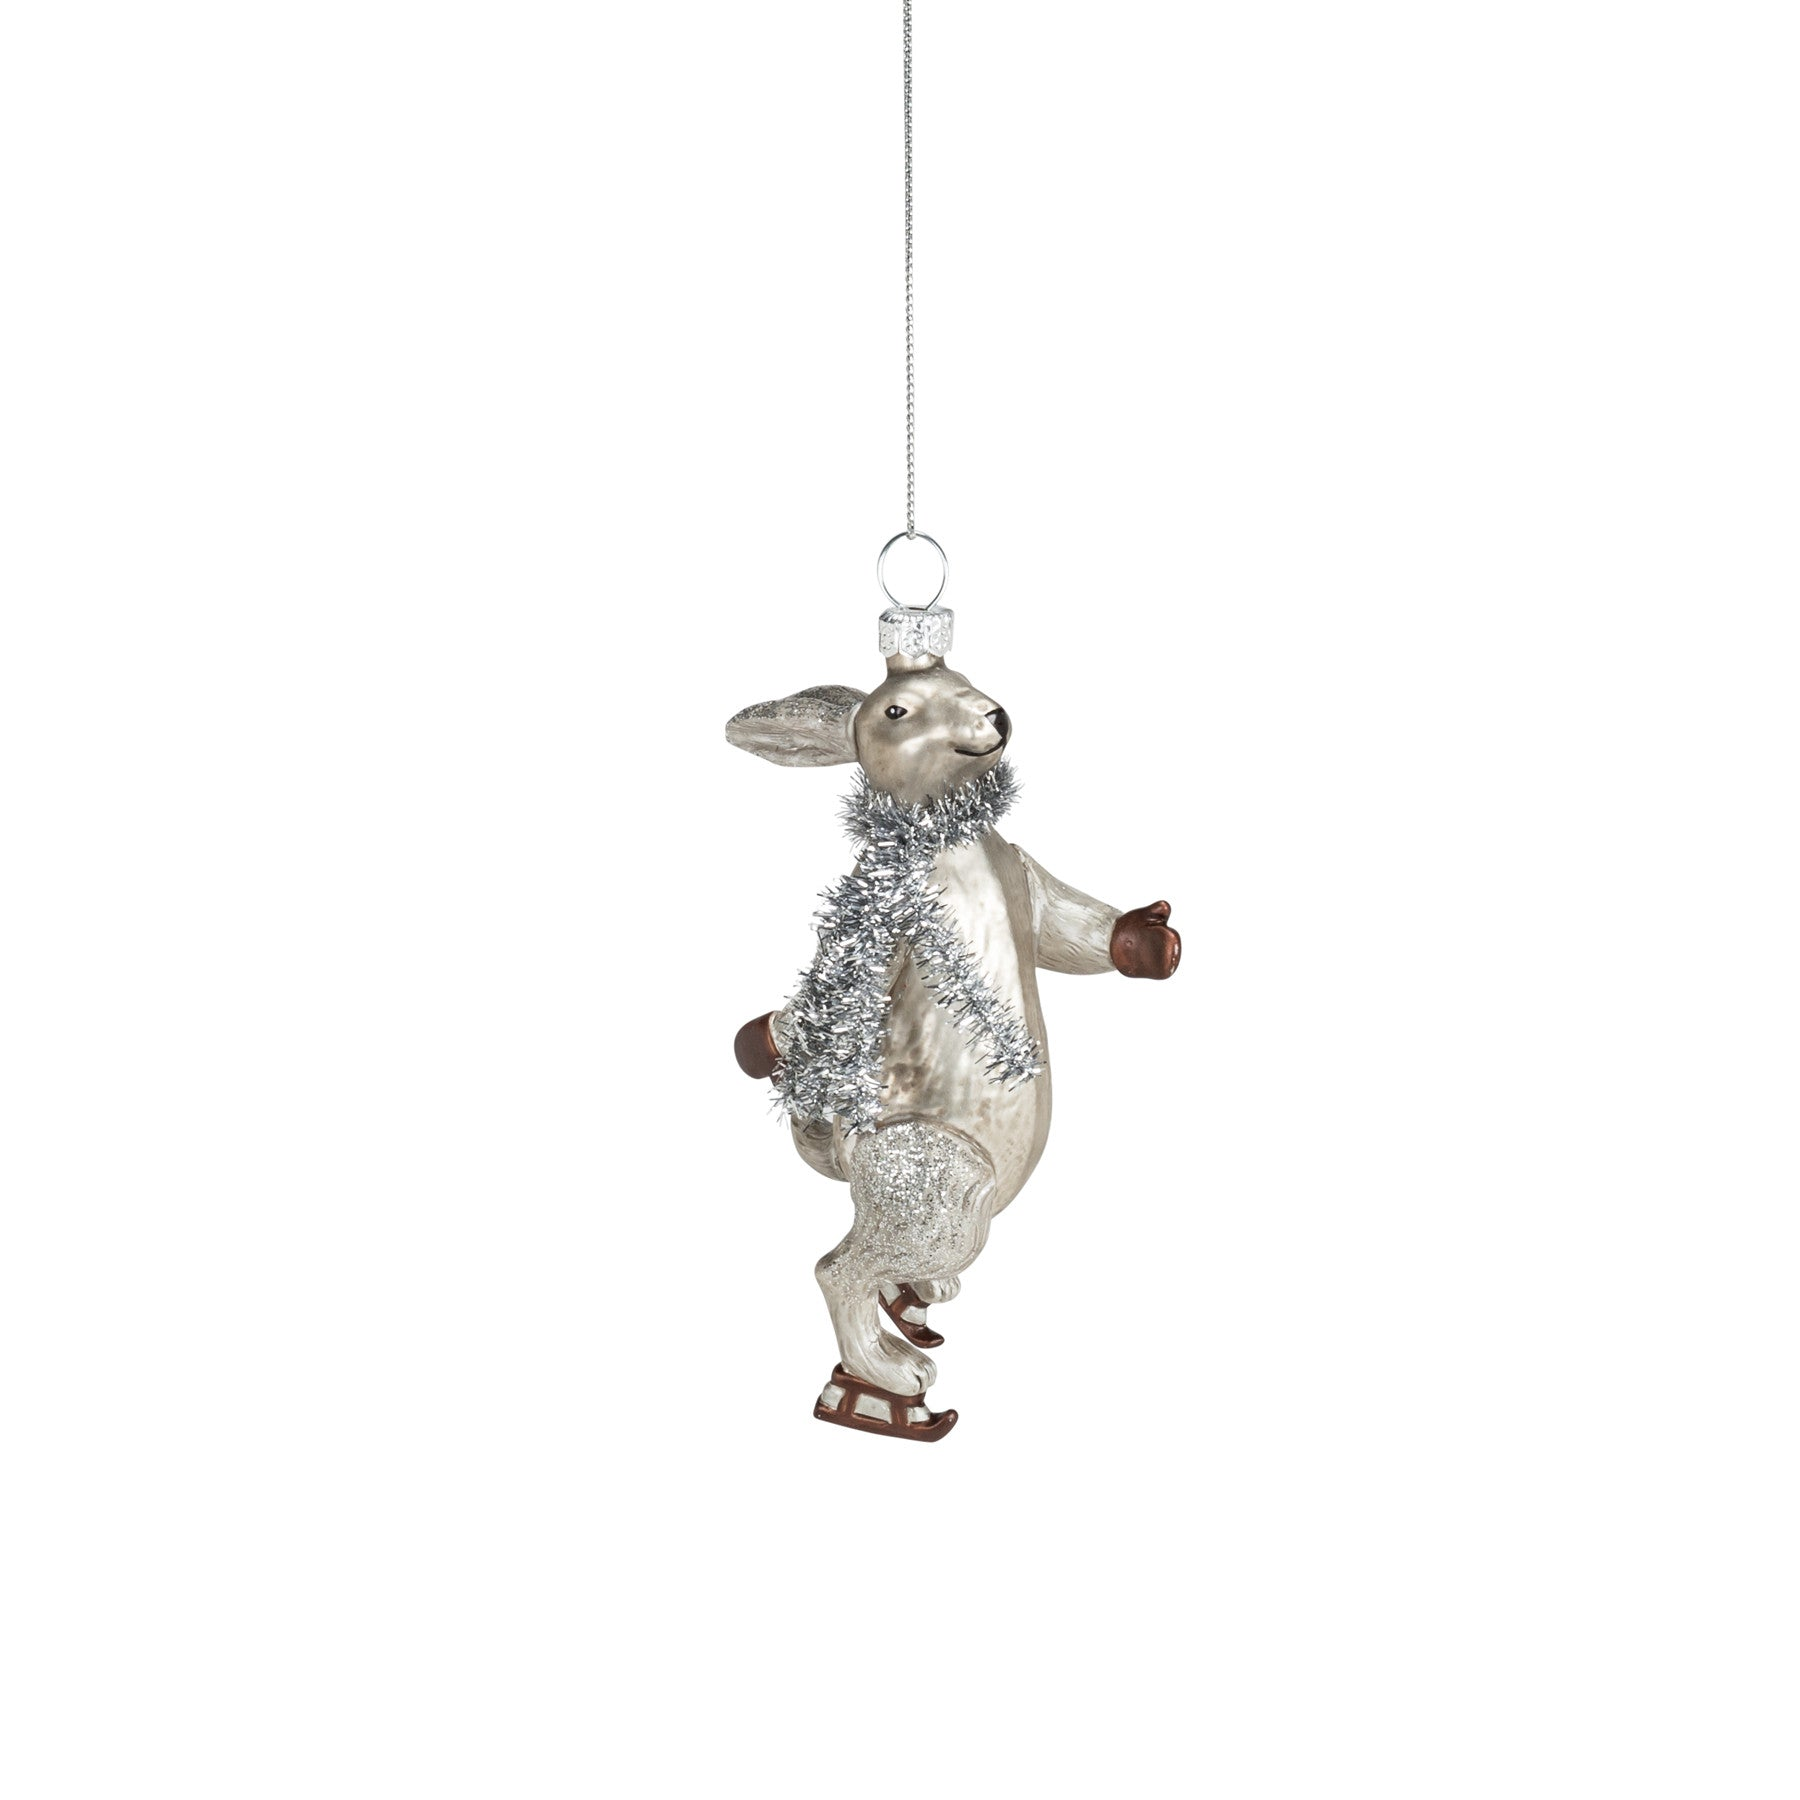 Rabbit Ornaments & Decorations